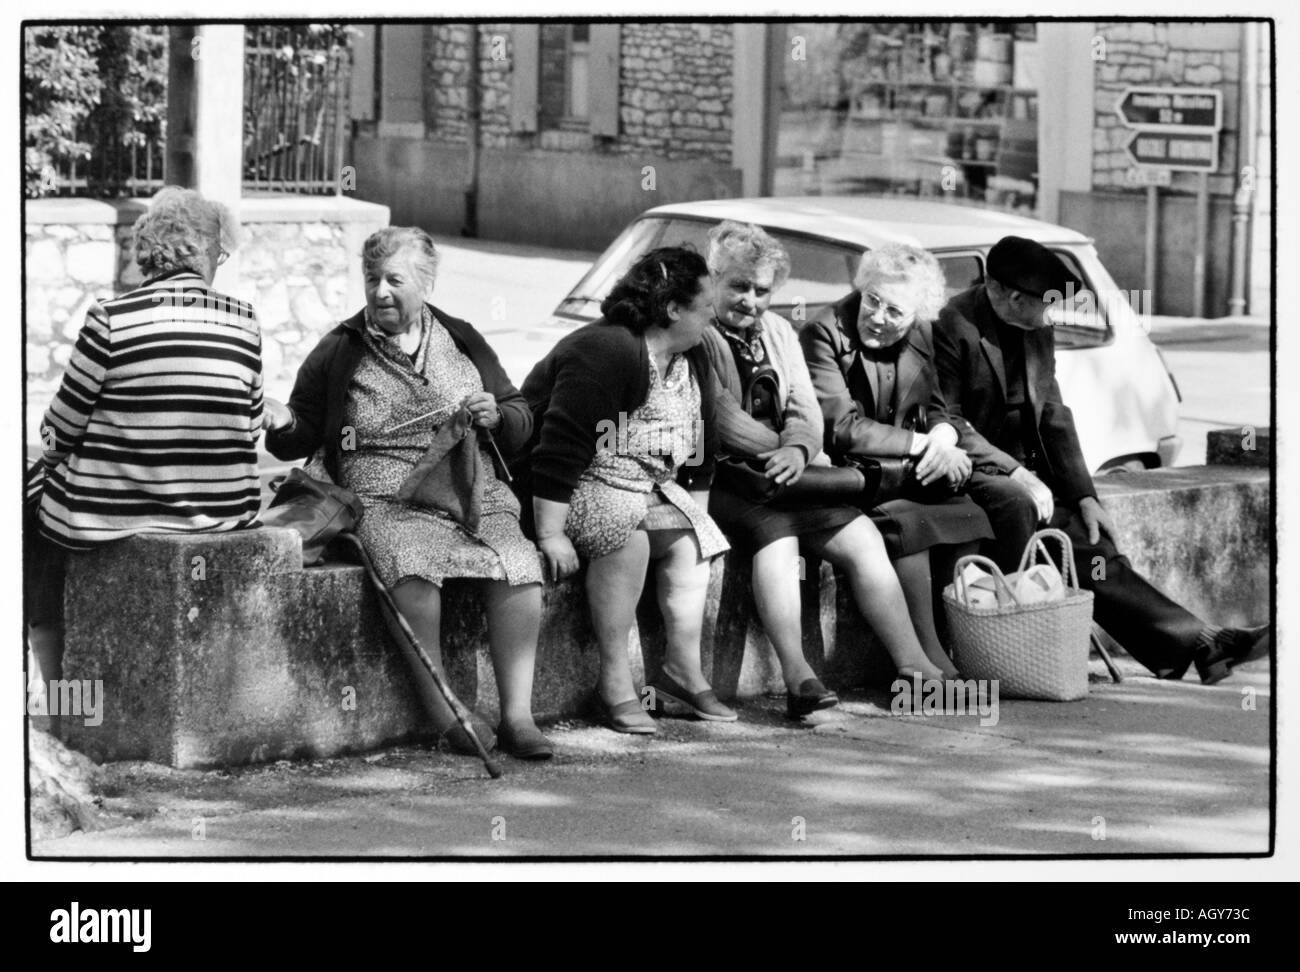 Image of: Face Street Photography Old People Sitting On Wall At The Street Stock Image Alamy Old People Chatting Street Black And White Stock Photos Images Alamy